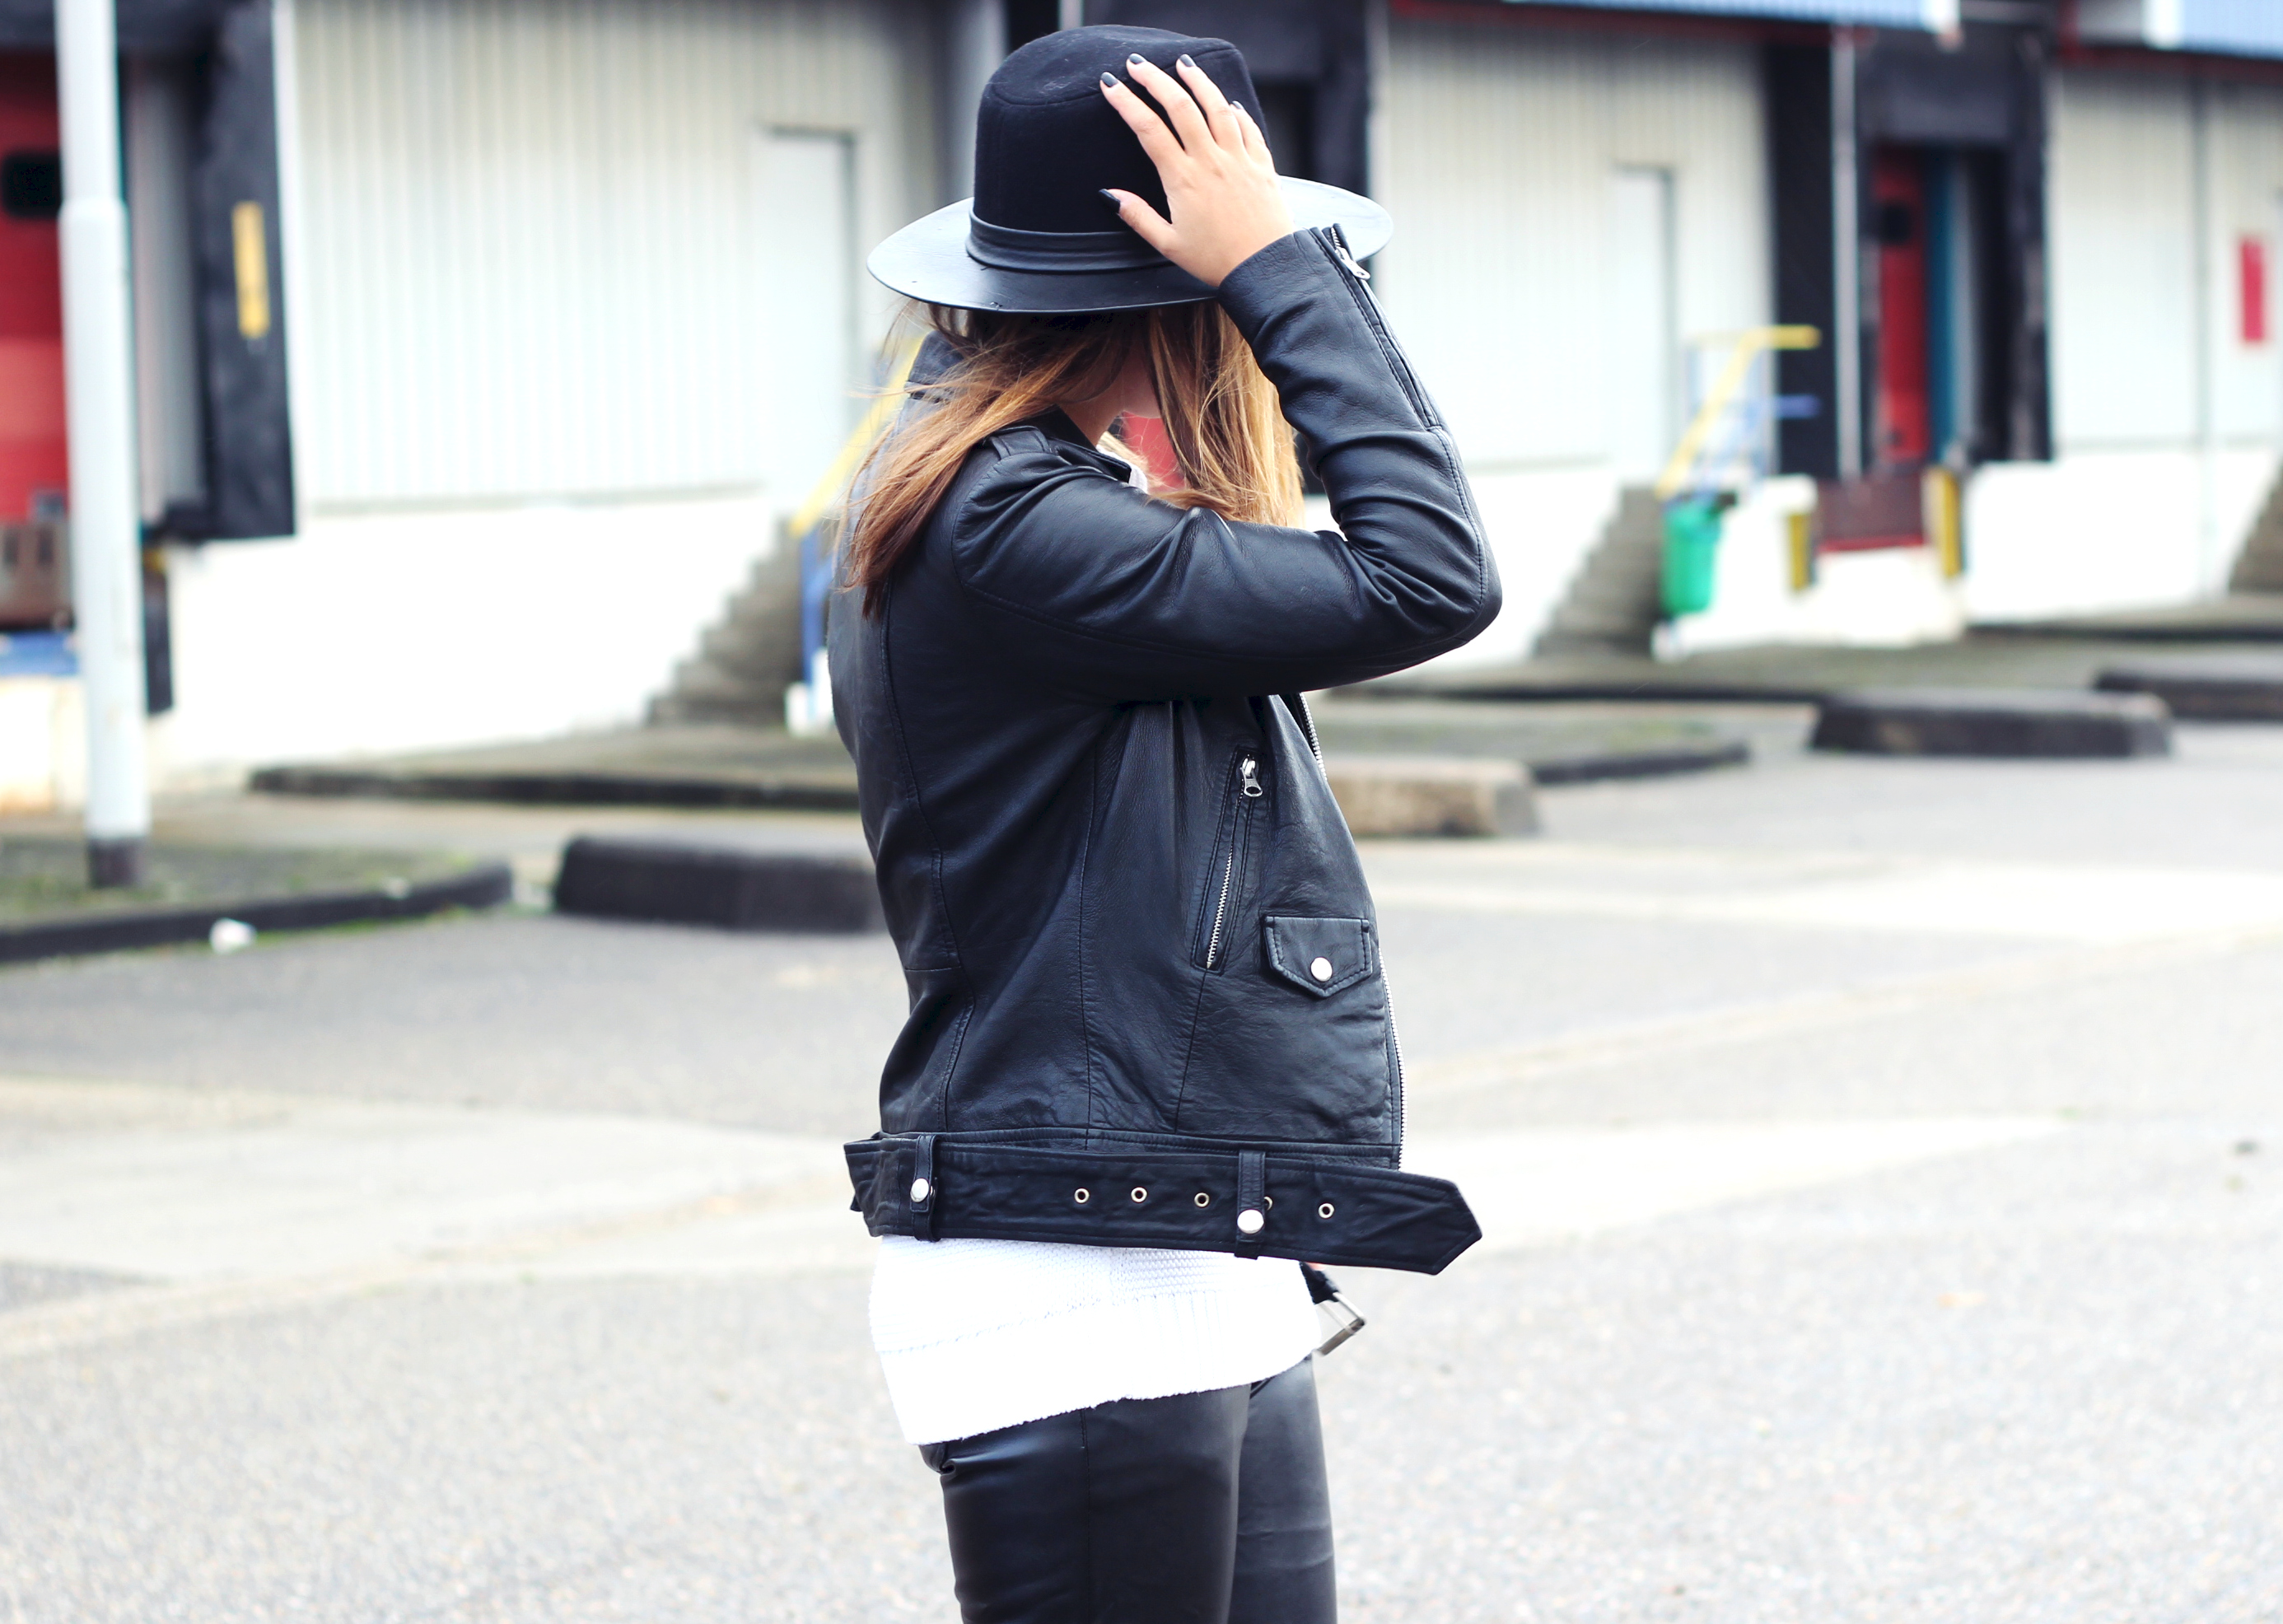 Black-fedora-hat-leather-jacket-minimalist